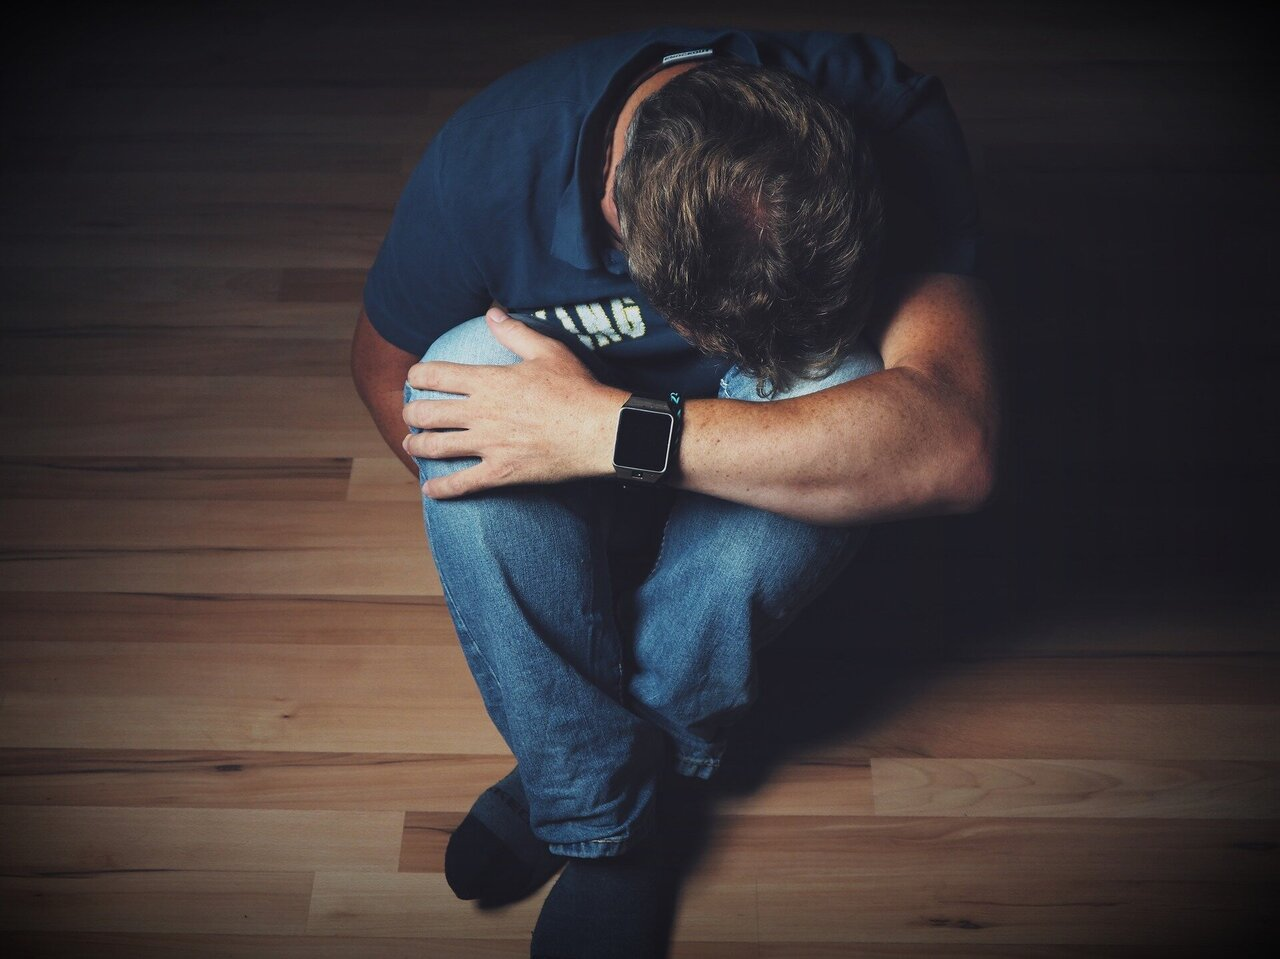 People with depression experience suicidal thoughts despite treatment